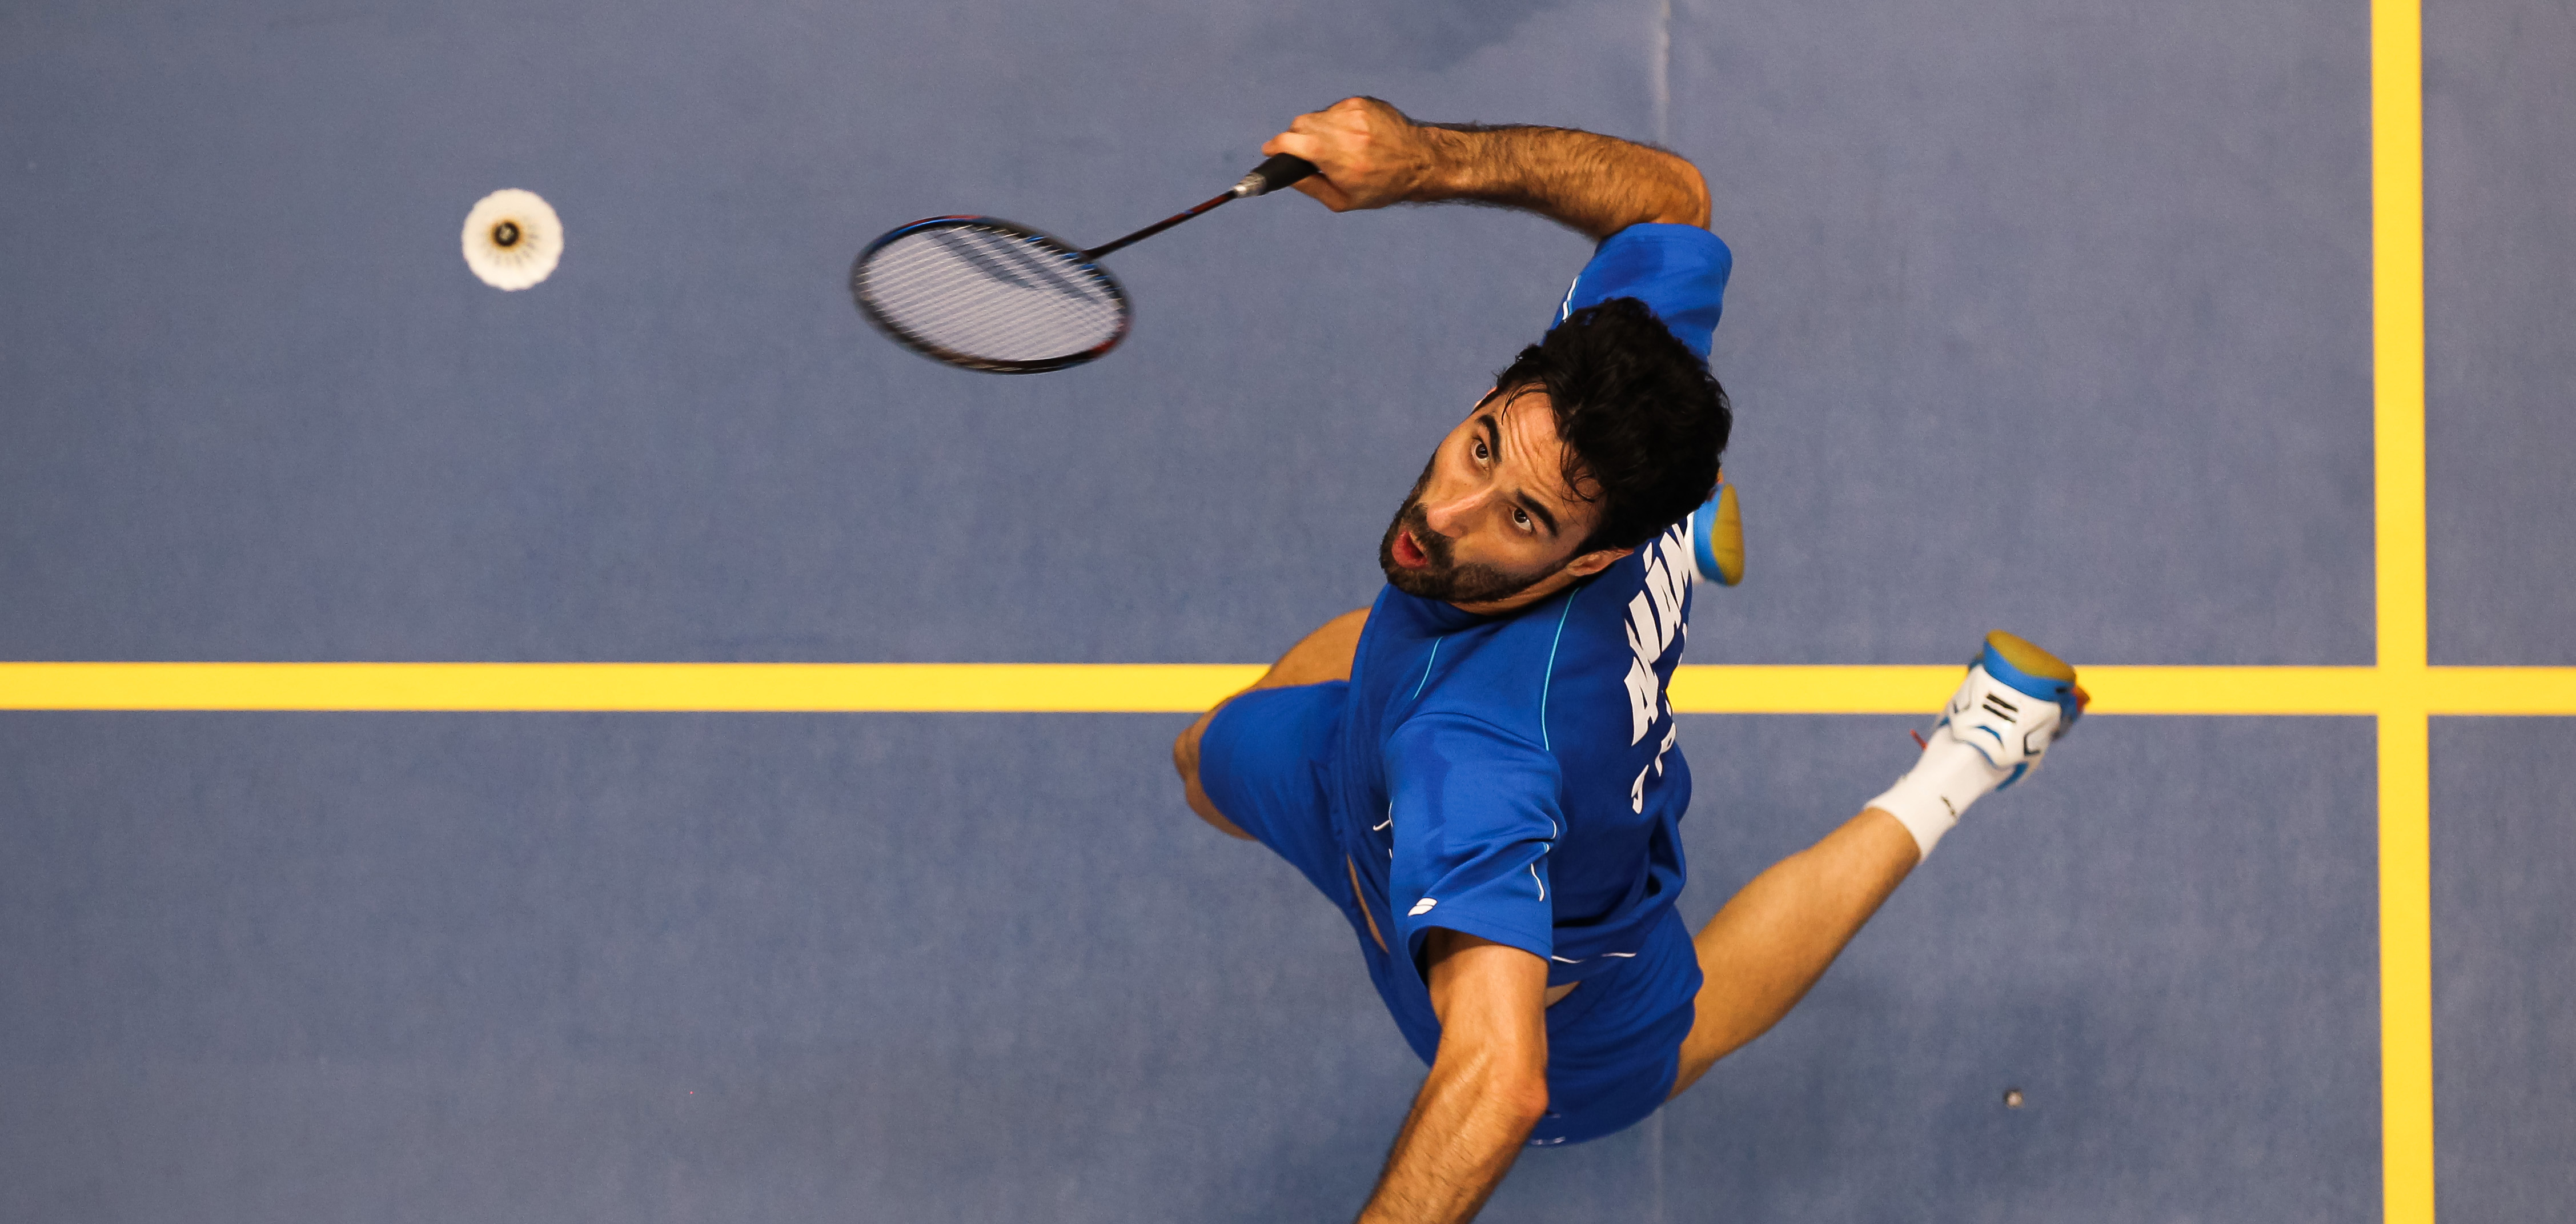 Hat Trick of Welsh titles for Pablo Abian